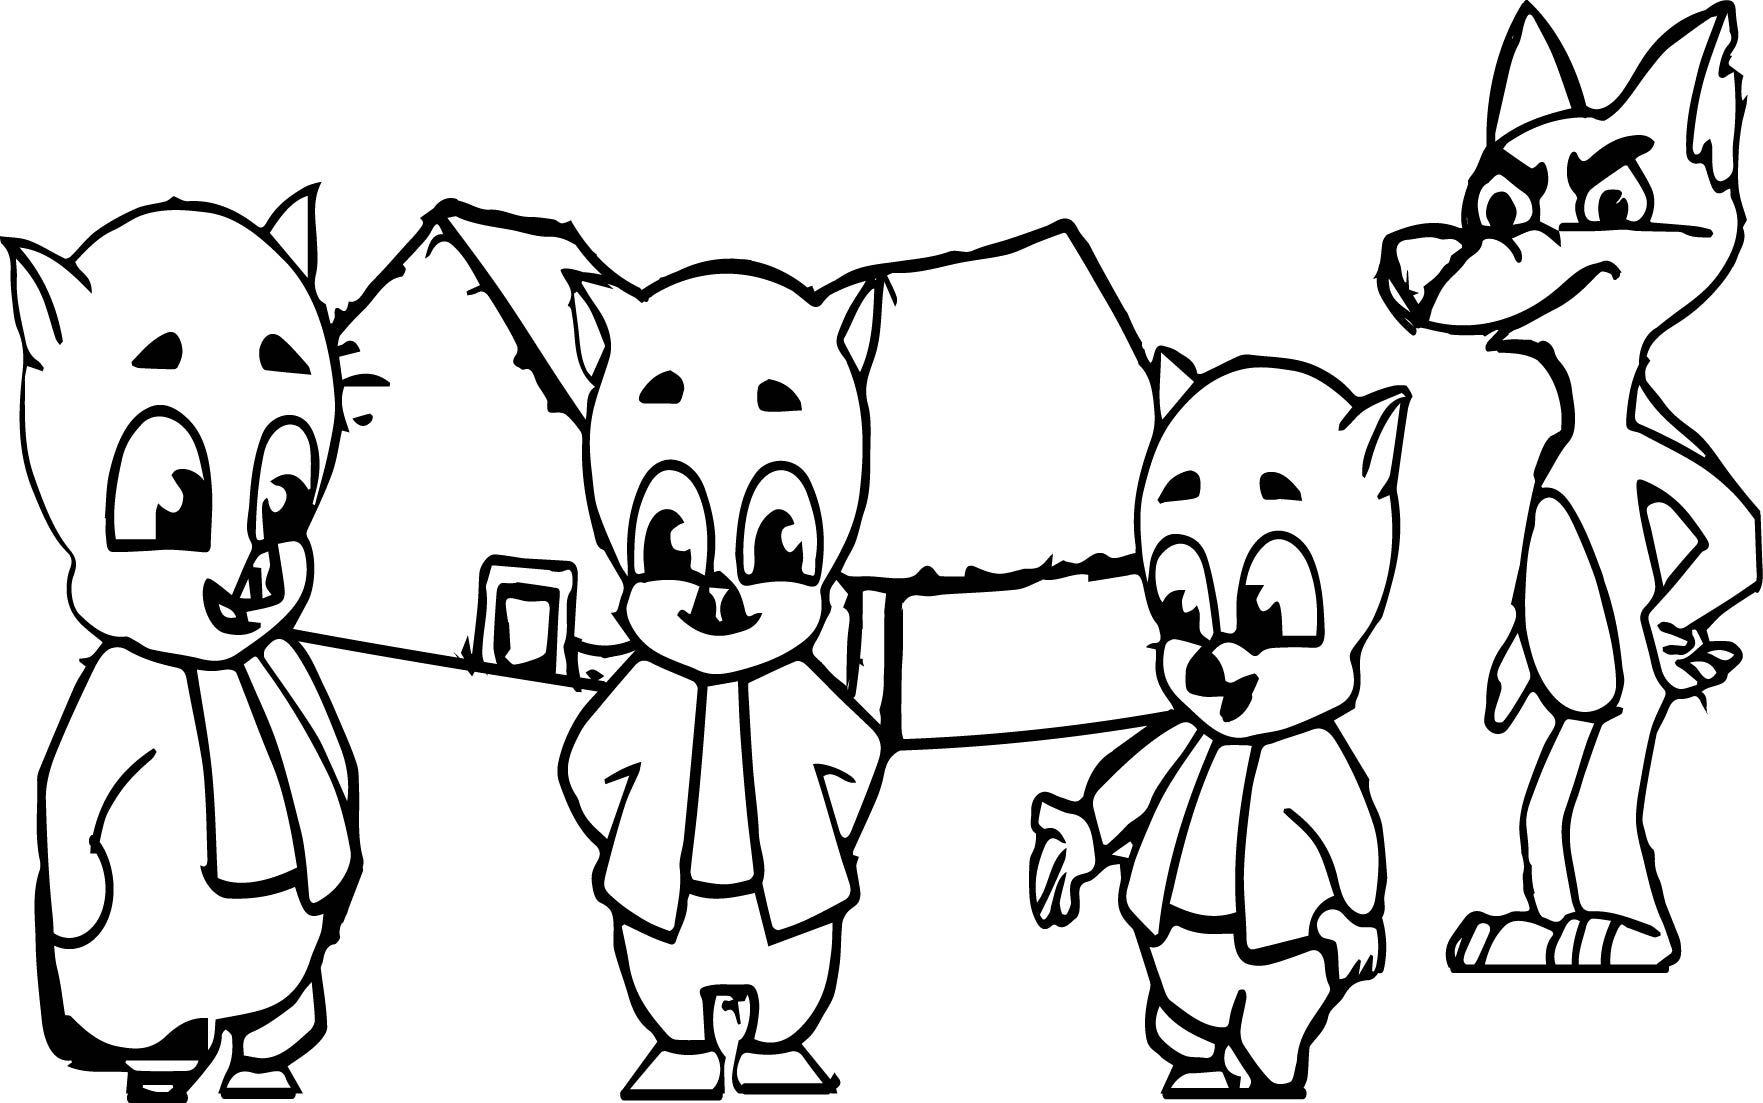 Awesome 3 Little Pigs And The Big Bad Wolf Coloring Page Wolf Colors Coloring Pages Big Bad Wolf